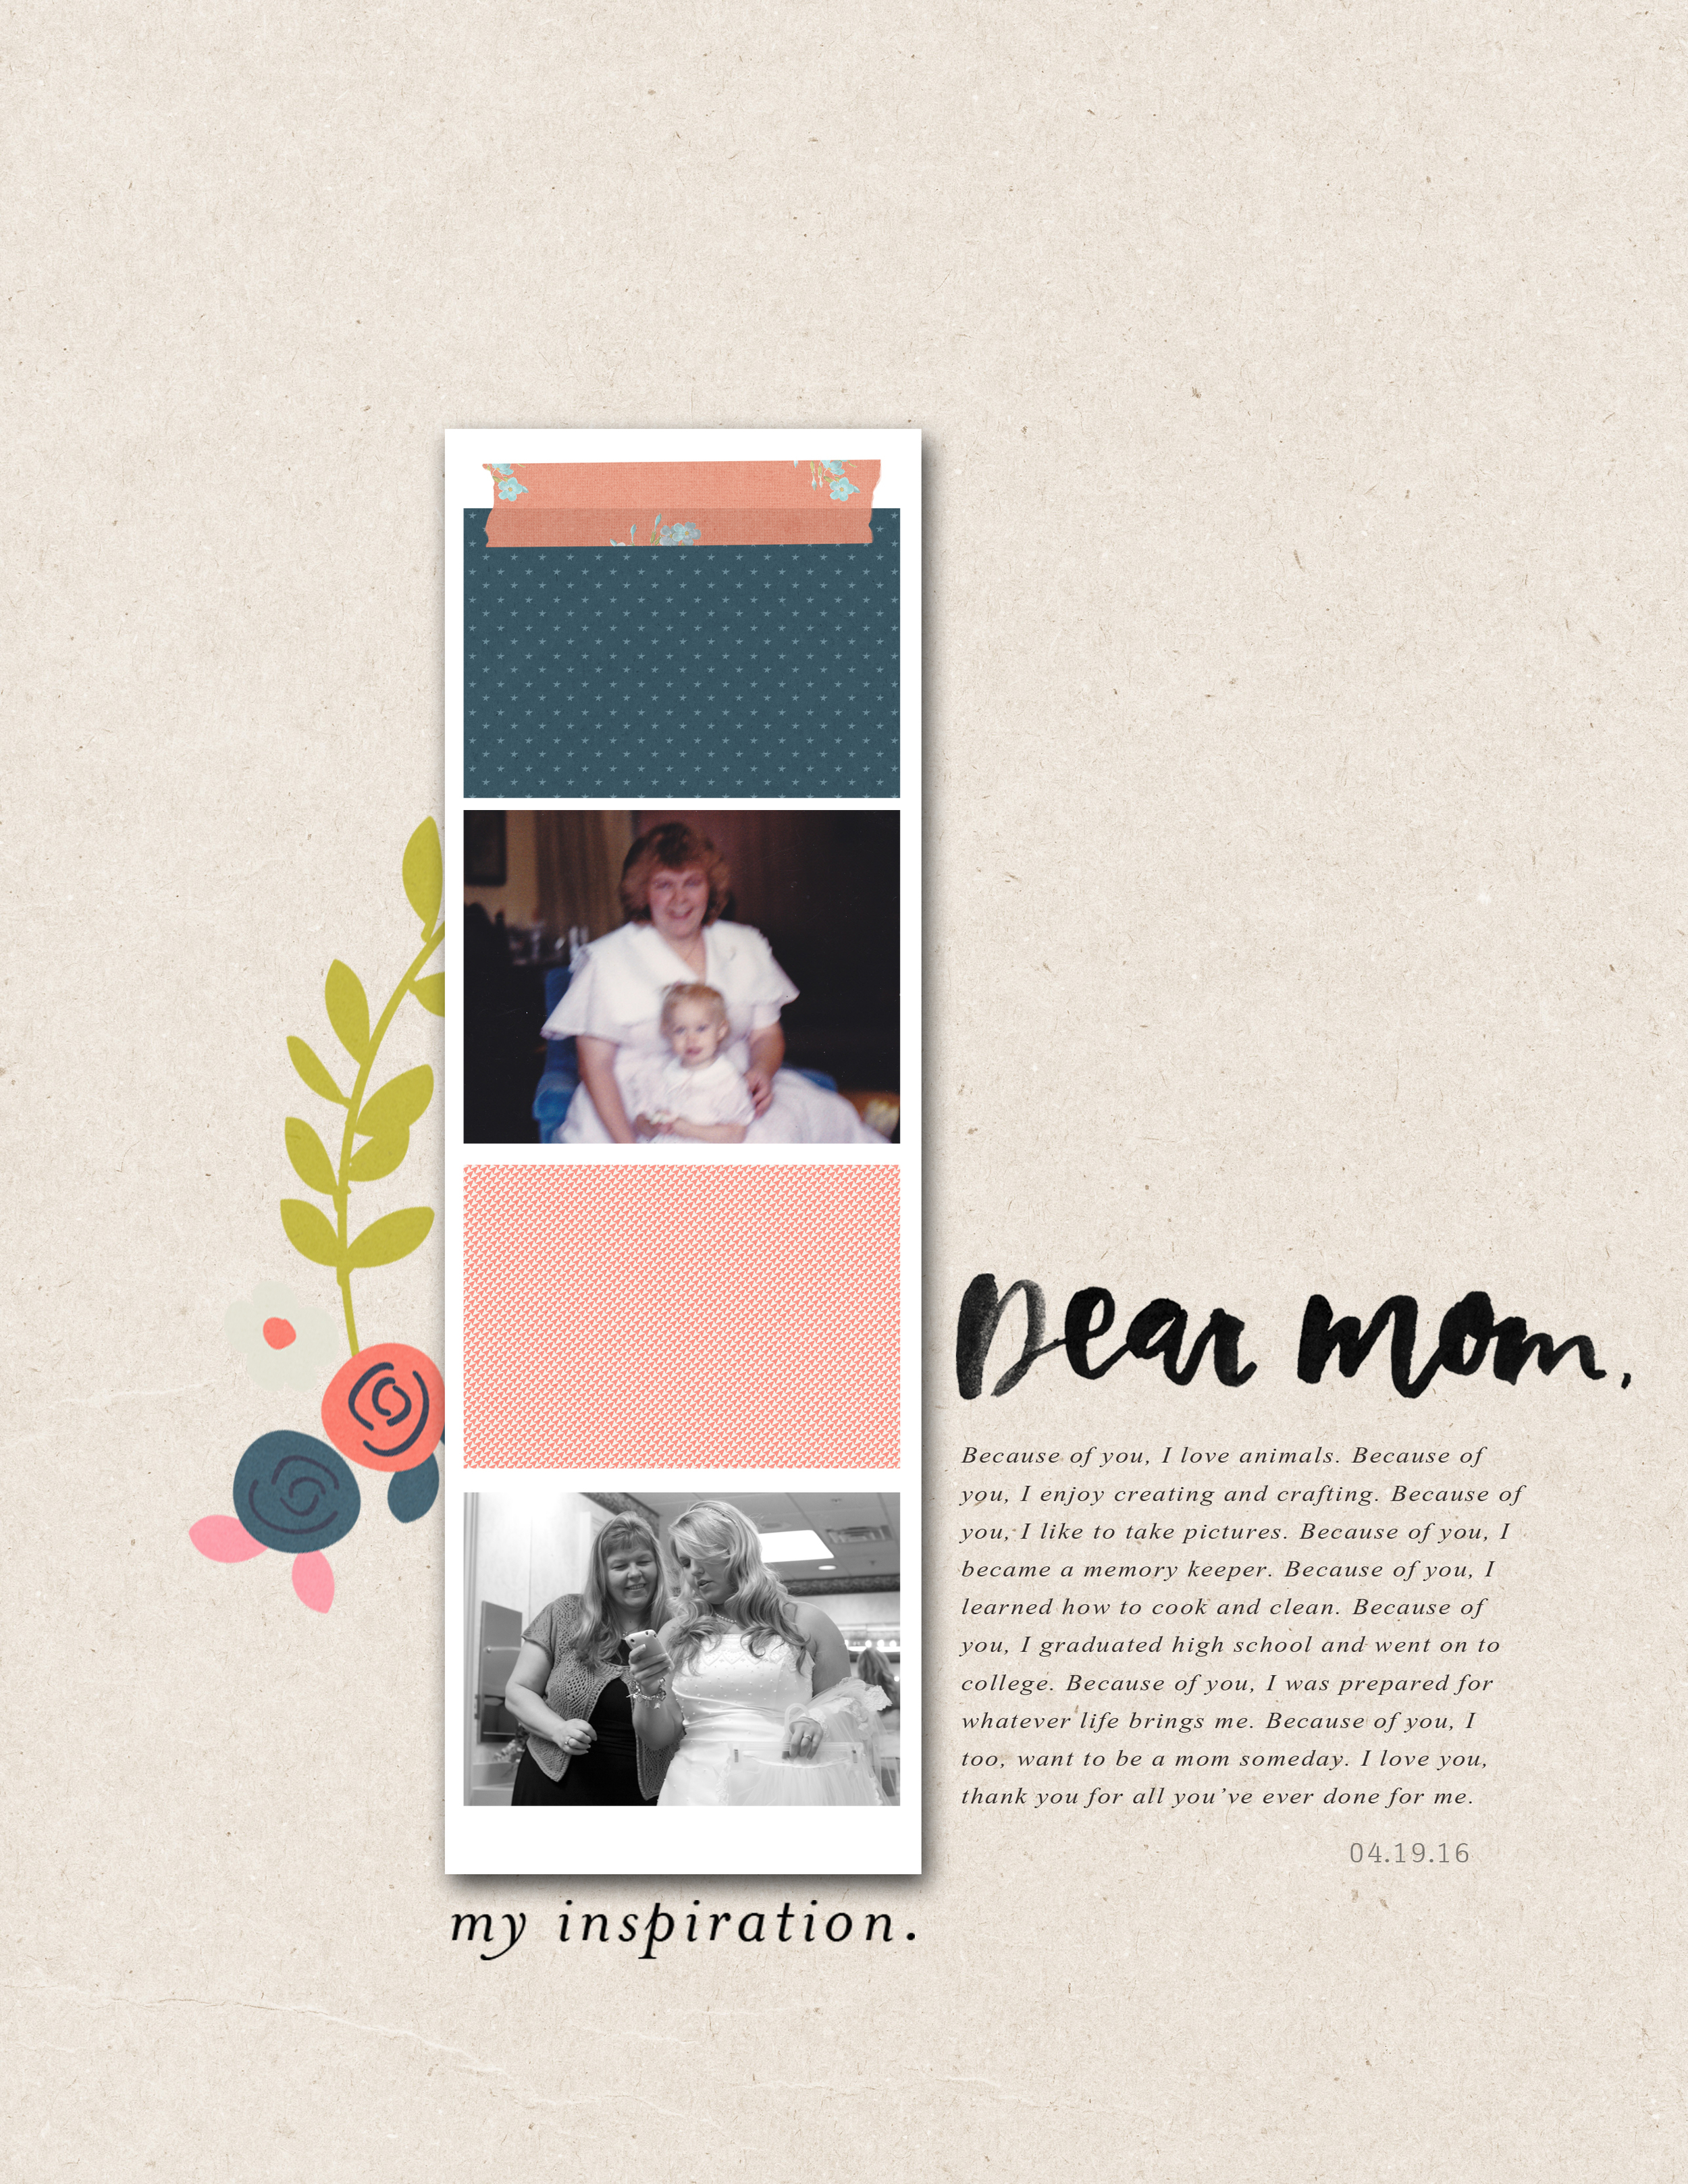 6x8 Digital Scrapbook Layout by Mandy of Turquoise Avenue, using Dear Mom from Paislee Press